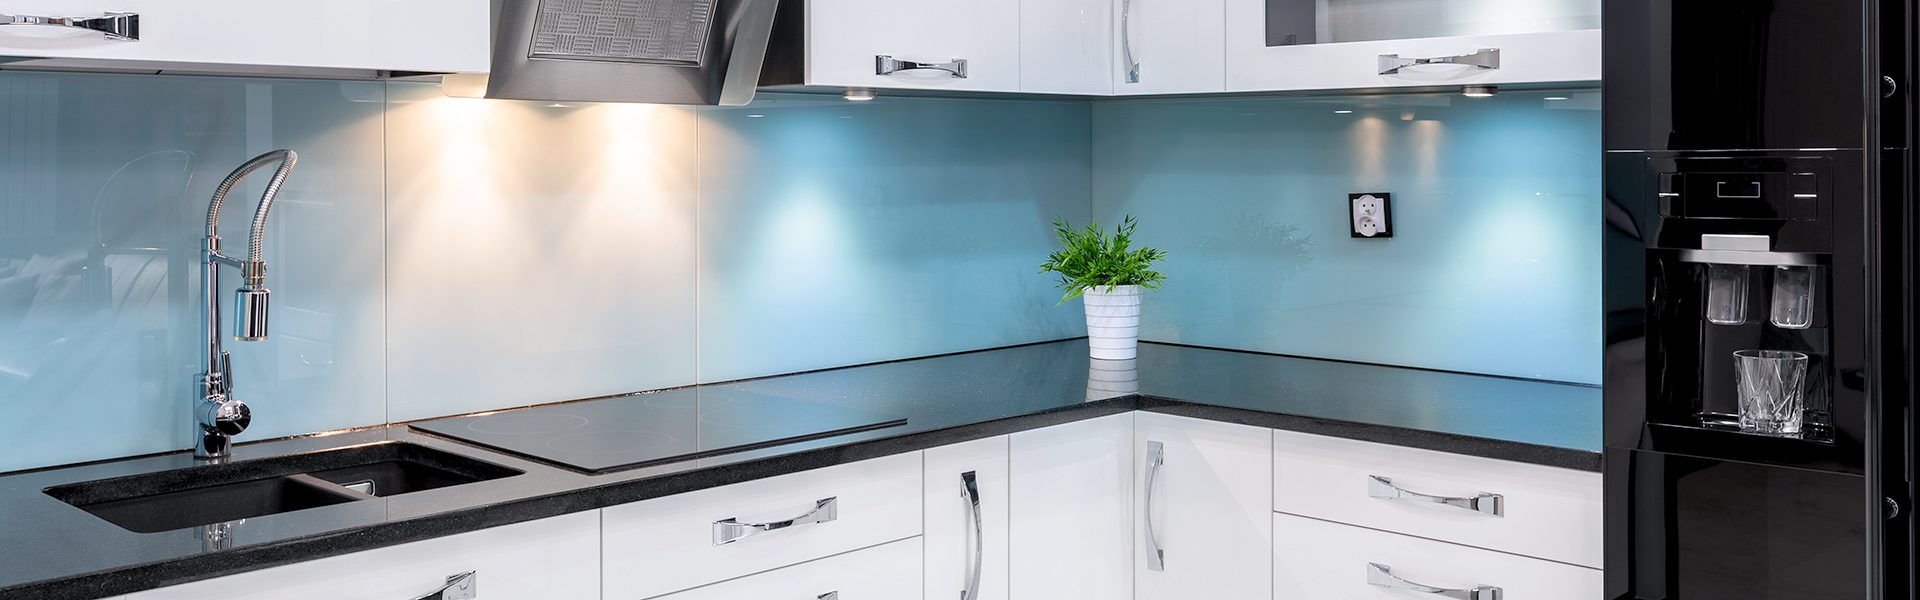 Glass splashbacks banner image